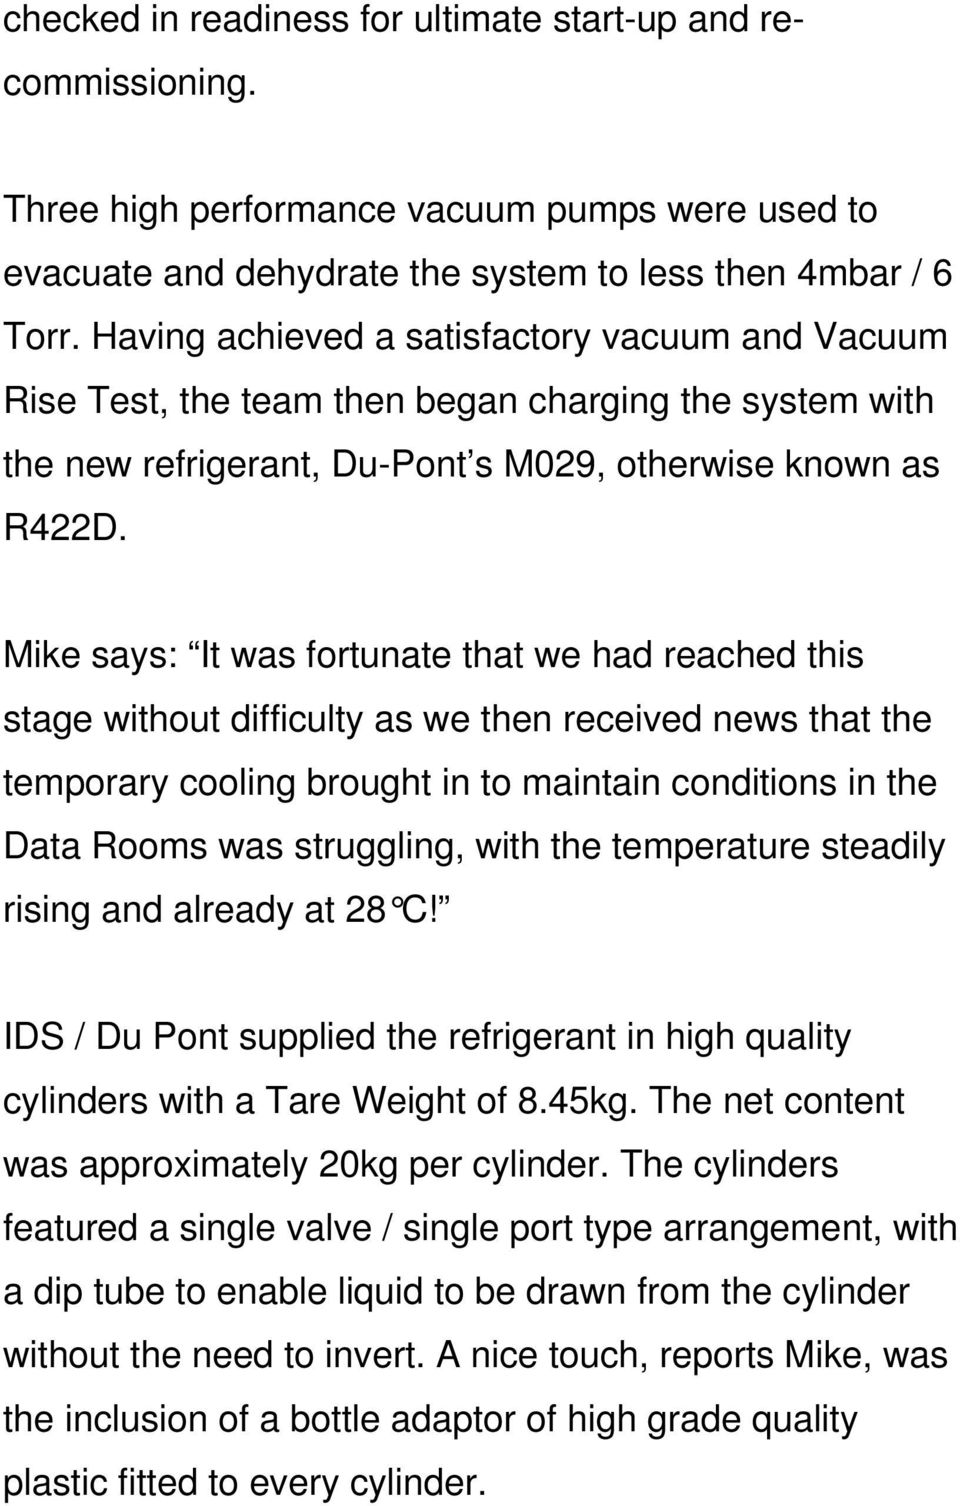 Mike says: It was fortunate that we had reached this stage without difficulty as we then received news that the temporary cooling brought in to maintain conditions in the Data Rooms was struggling,